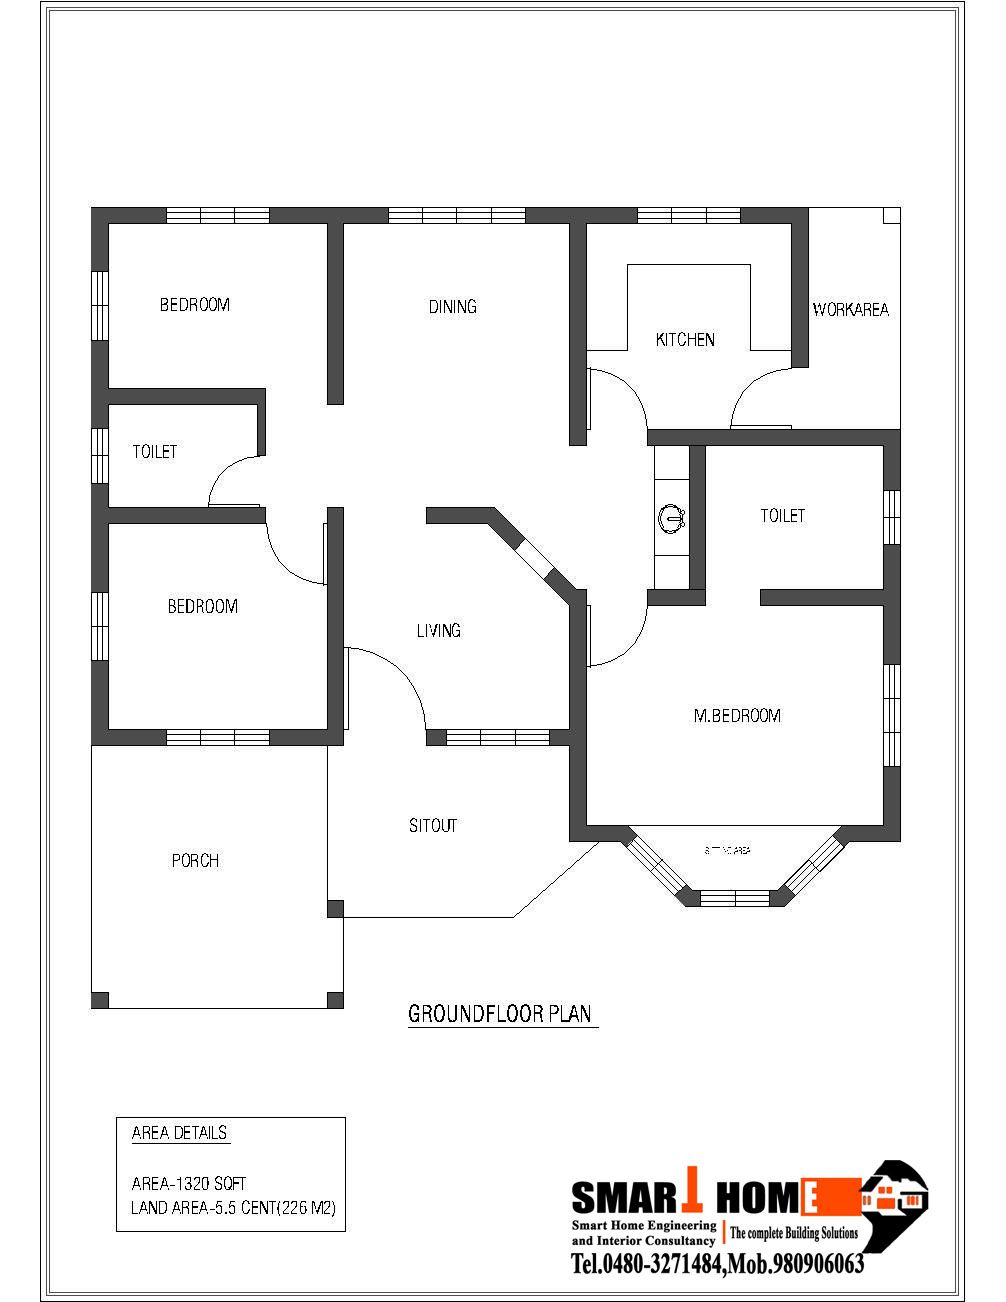 1320 Sqft Kerala Style 3 Bedroom House Plan From Smart Home Gf